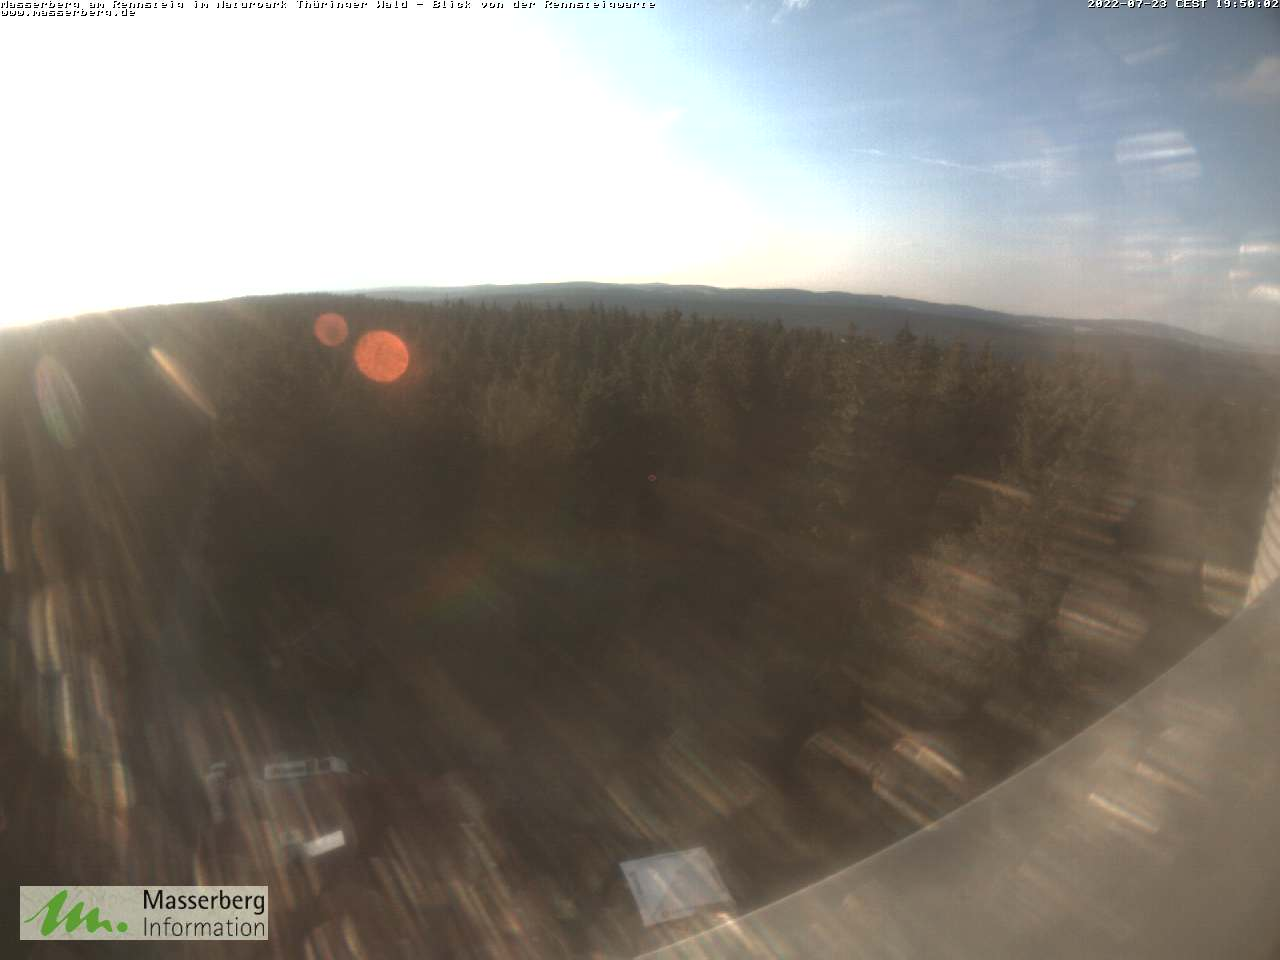 Webcam Masserberg Turm